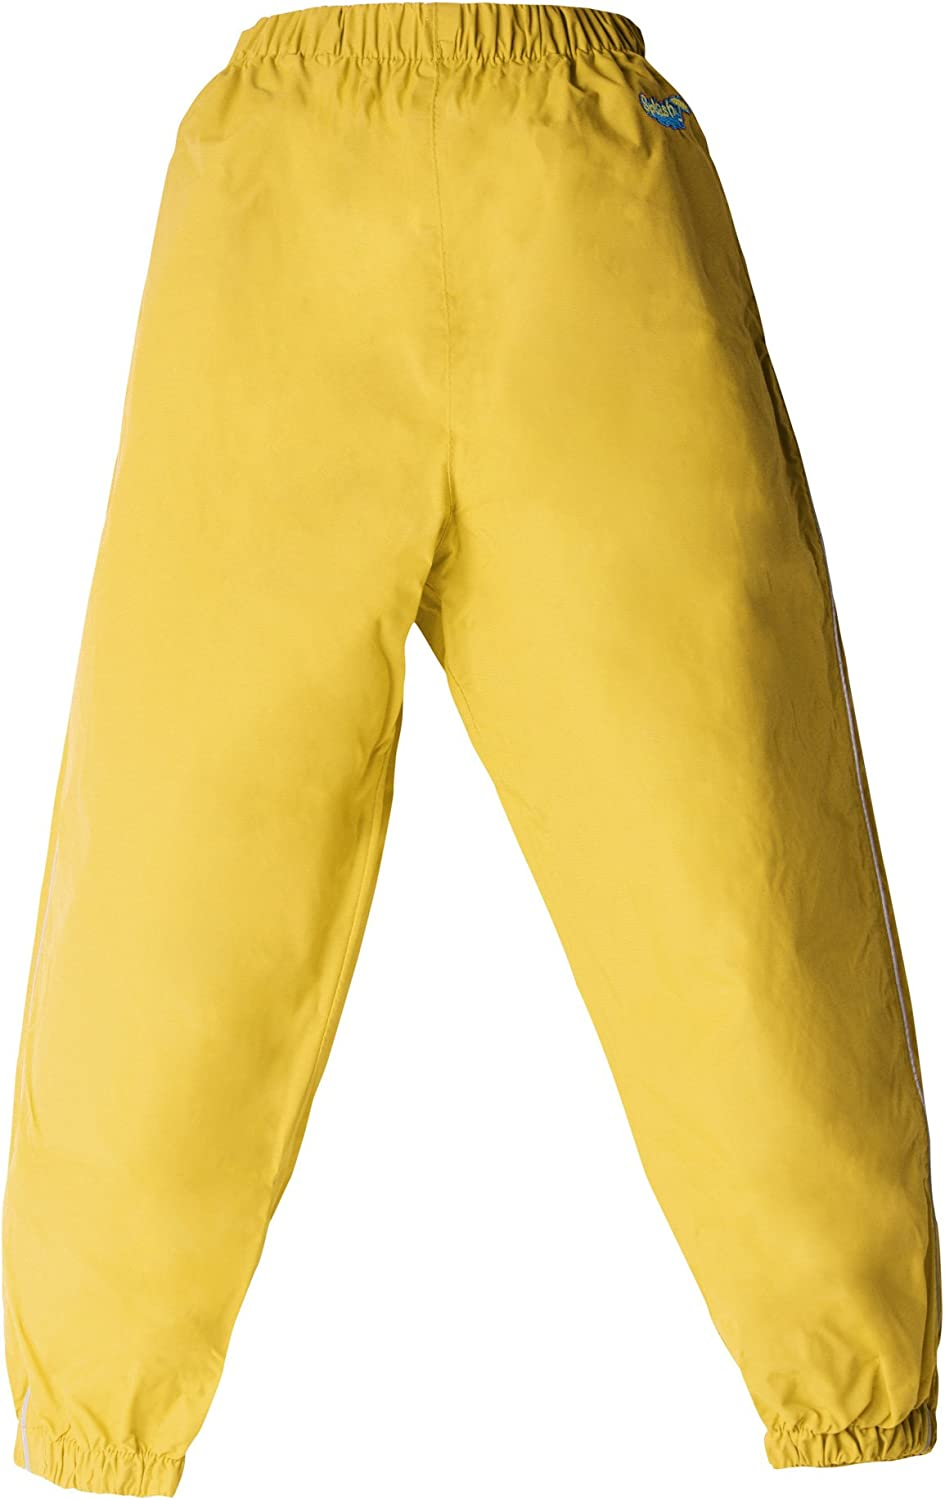 Windproof Splashy Kids Rain Pants Yellow 100/% Waterproof